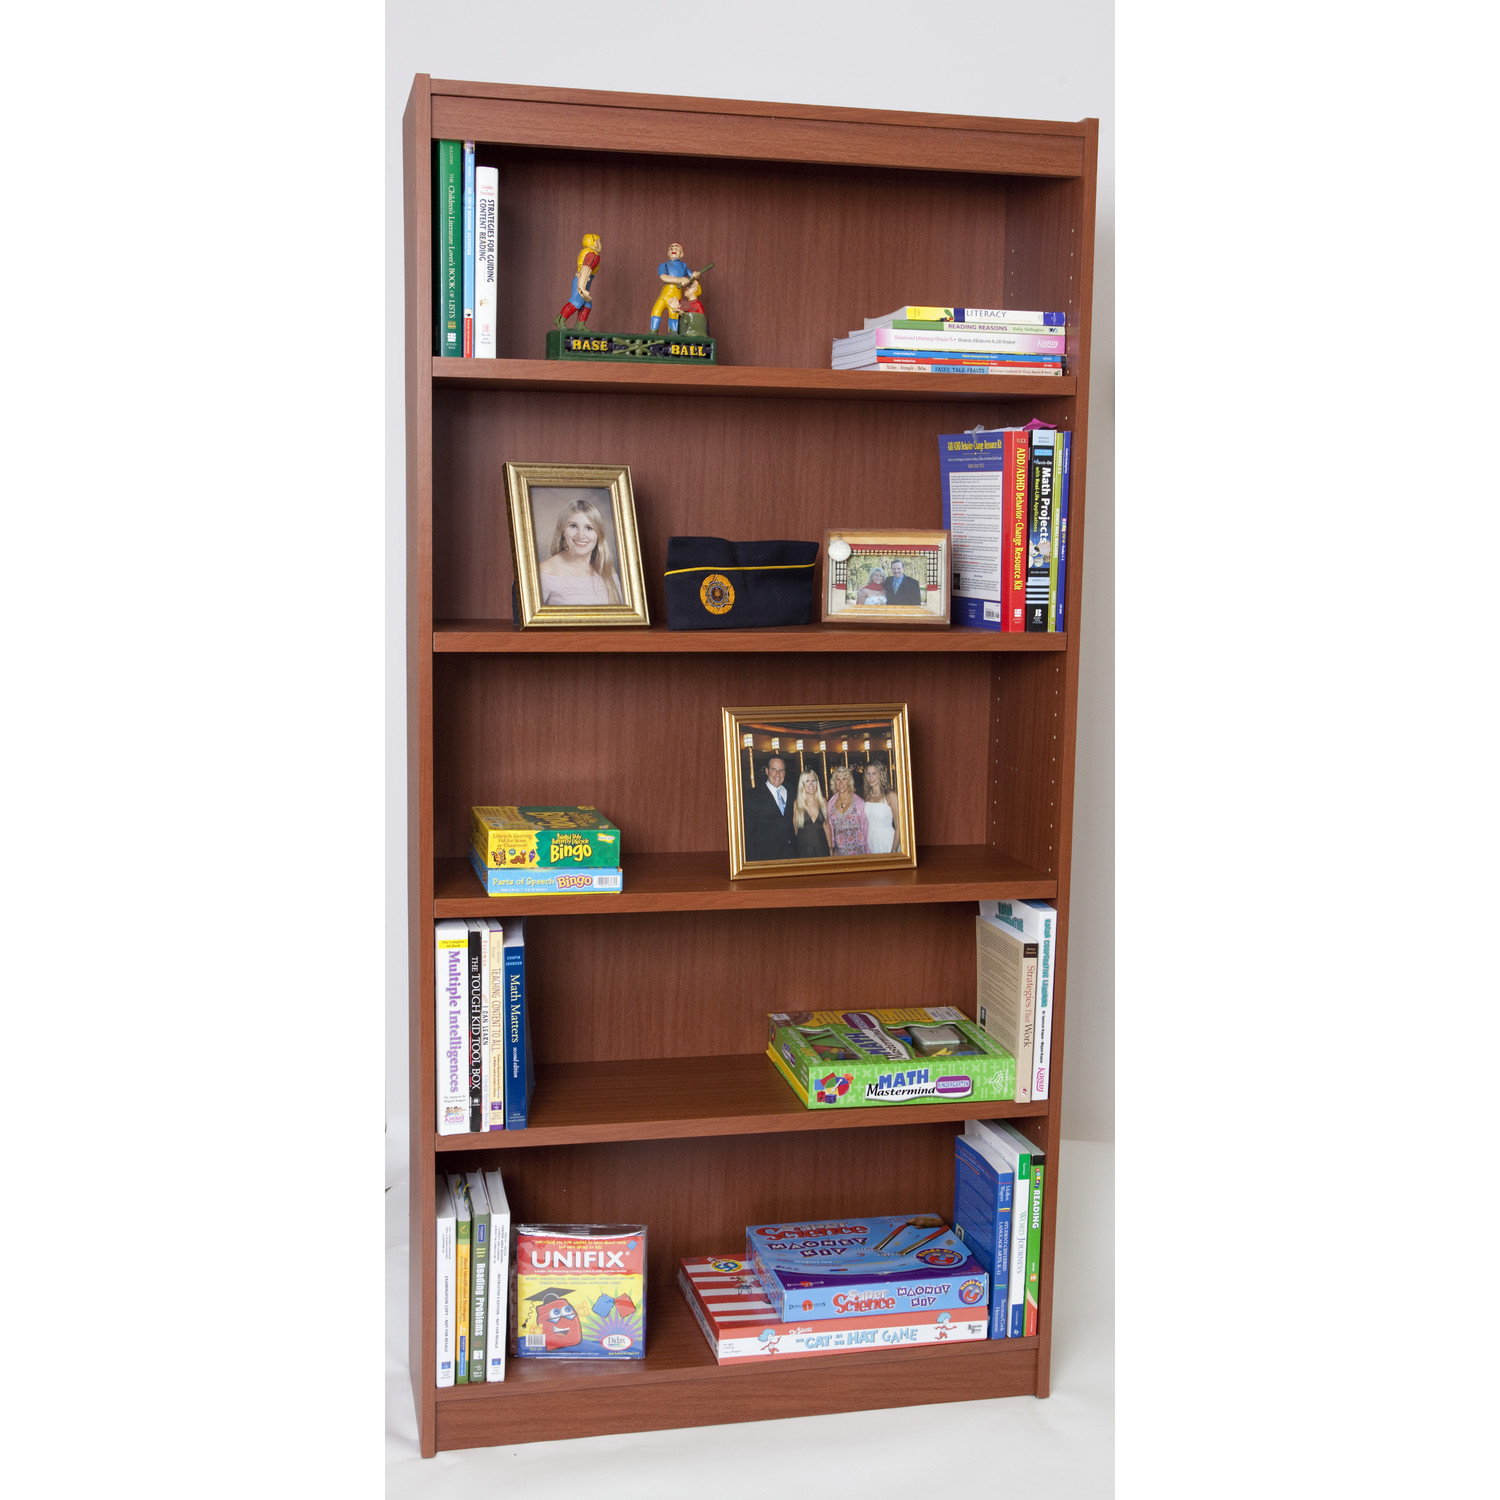 Image of: Room Essentials Bookcase Size